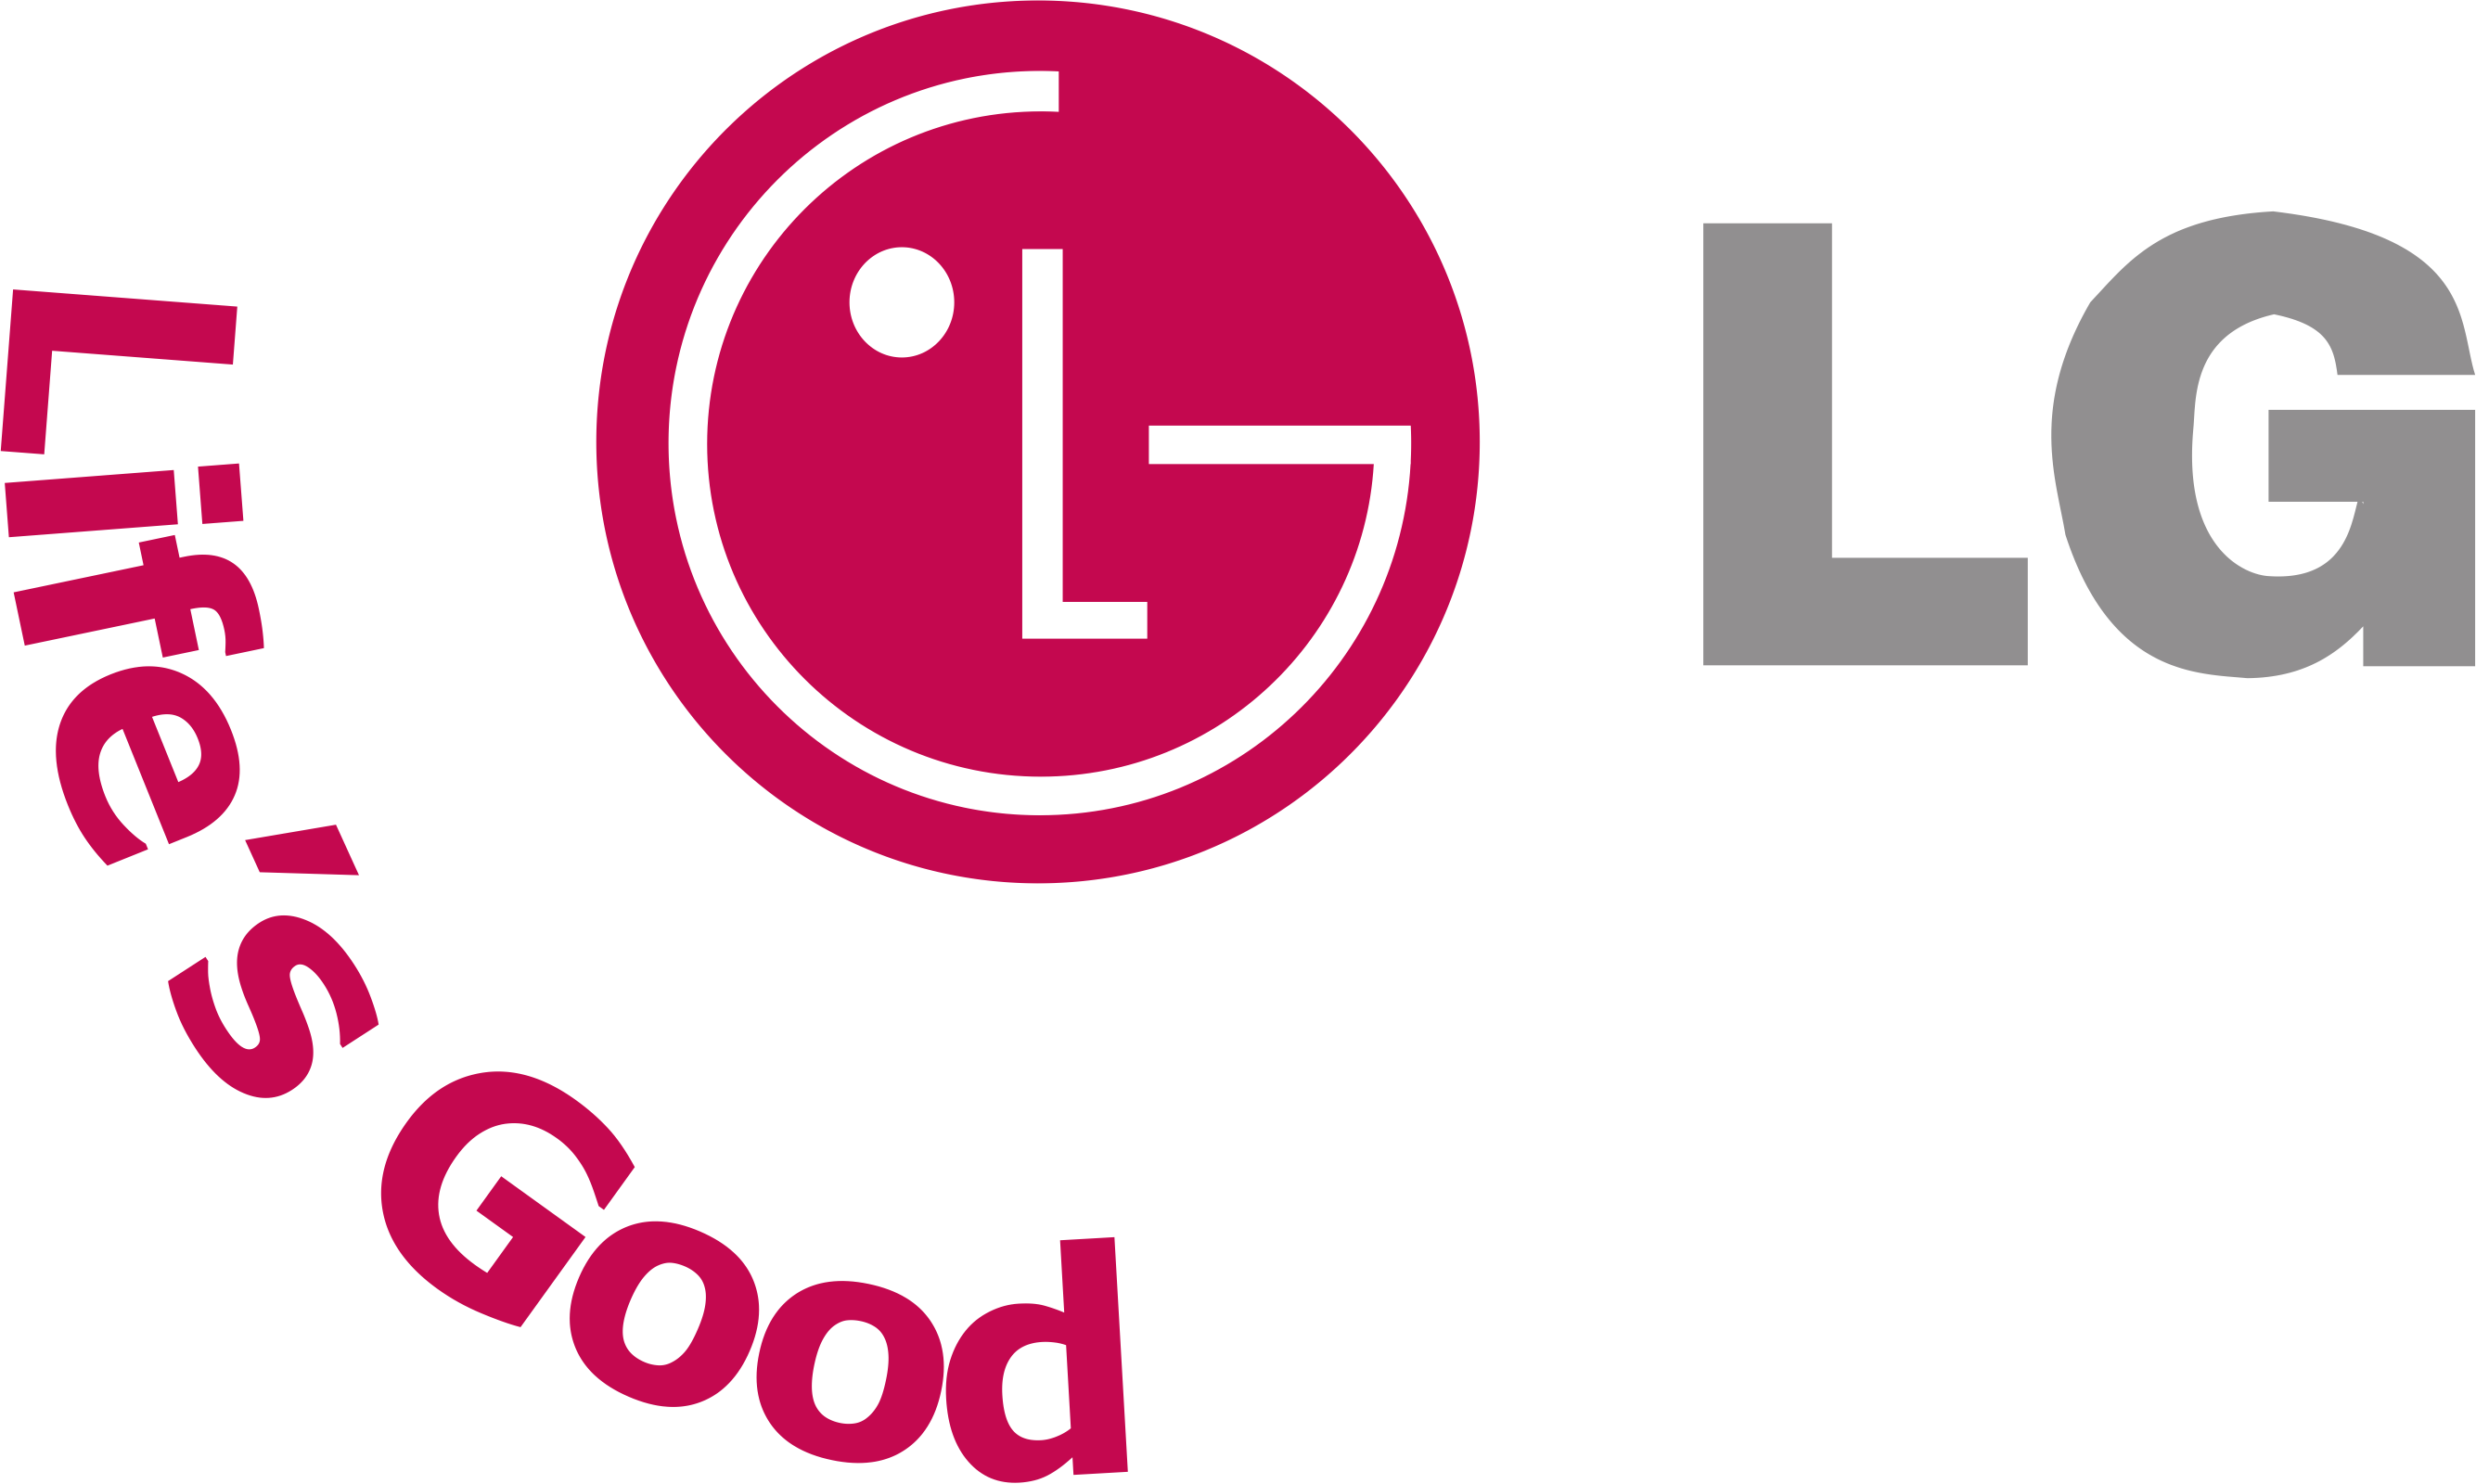 File:LG 2007 logo with slogan.png.